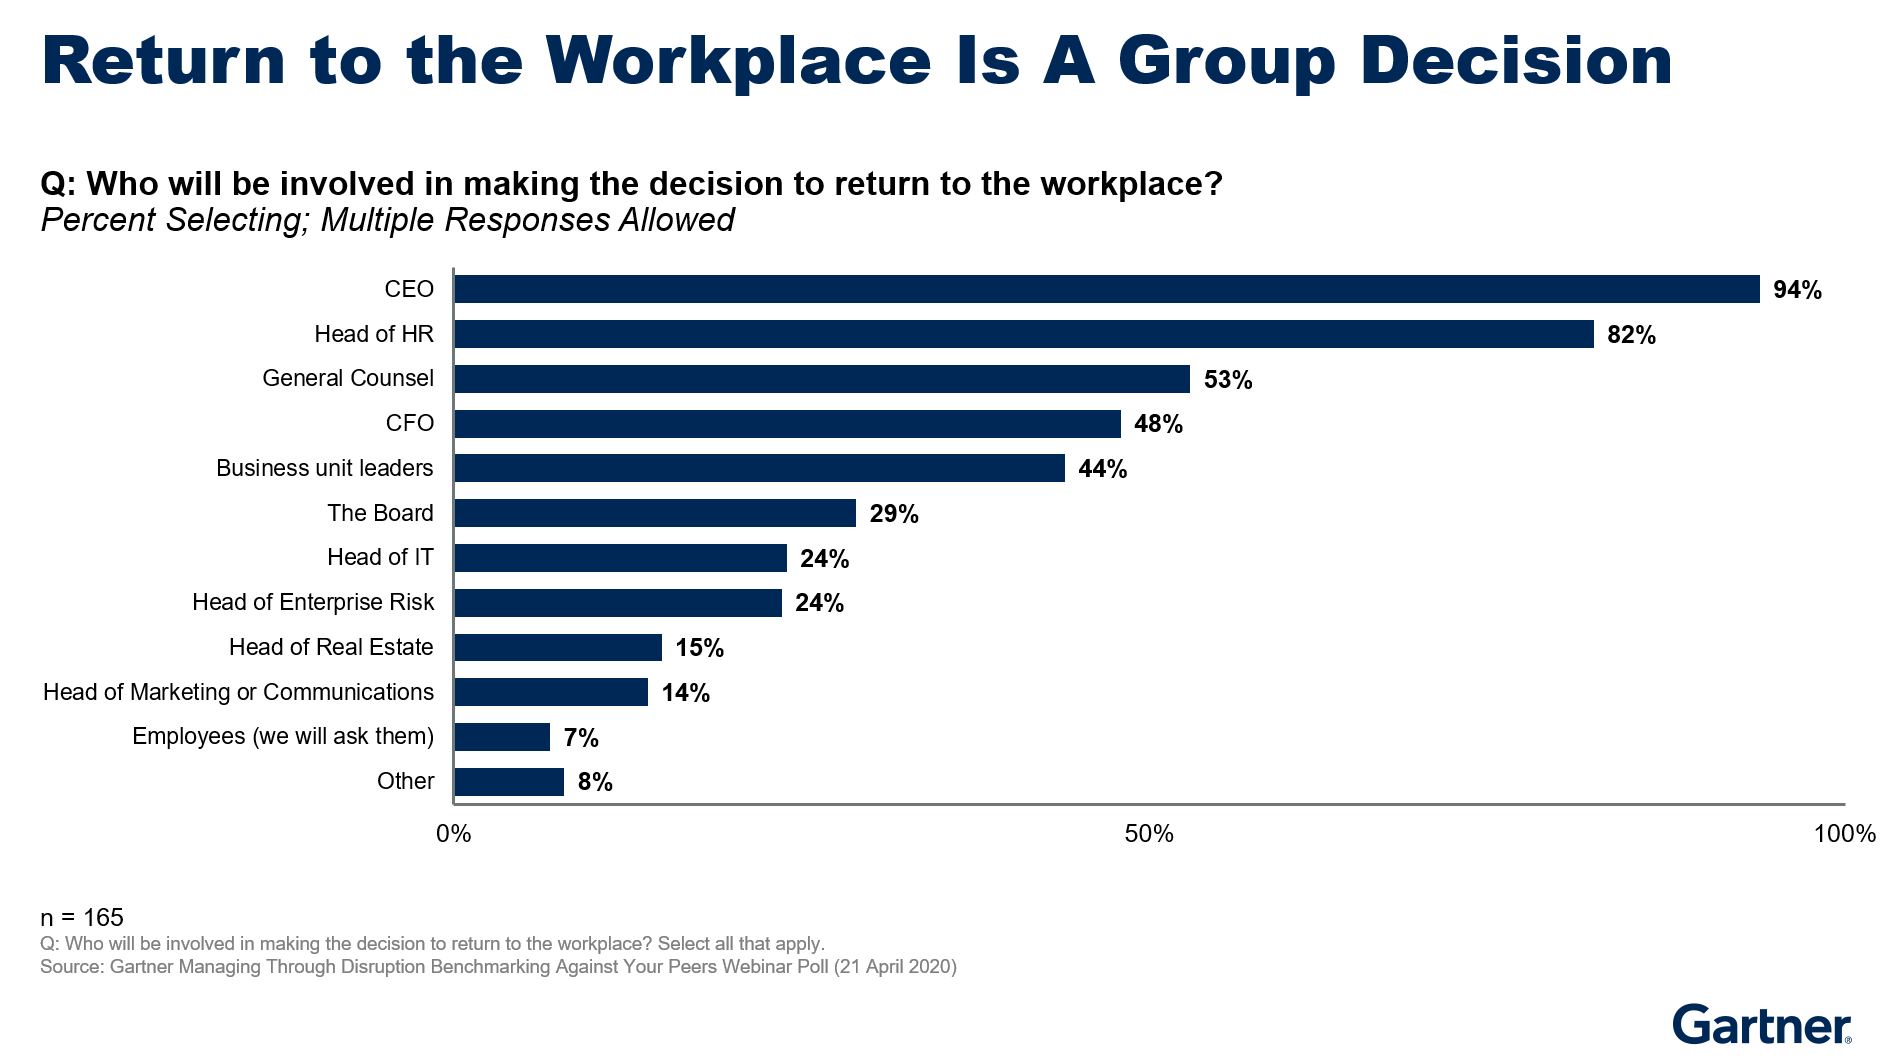 Return to the Workplace is a Group Decision